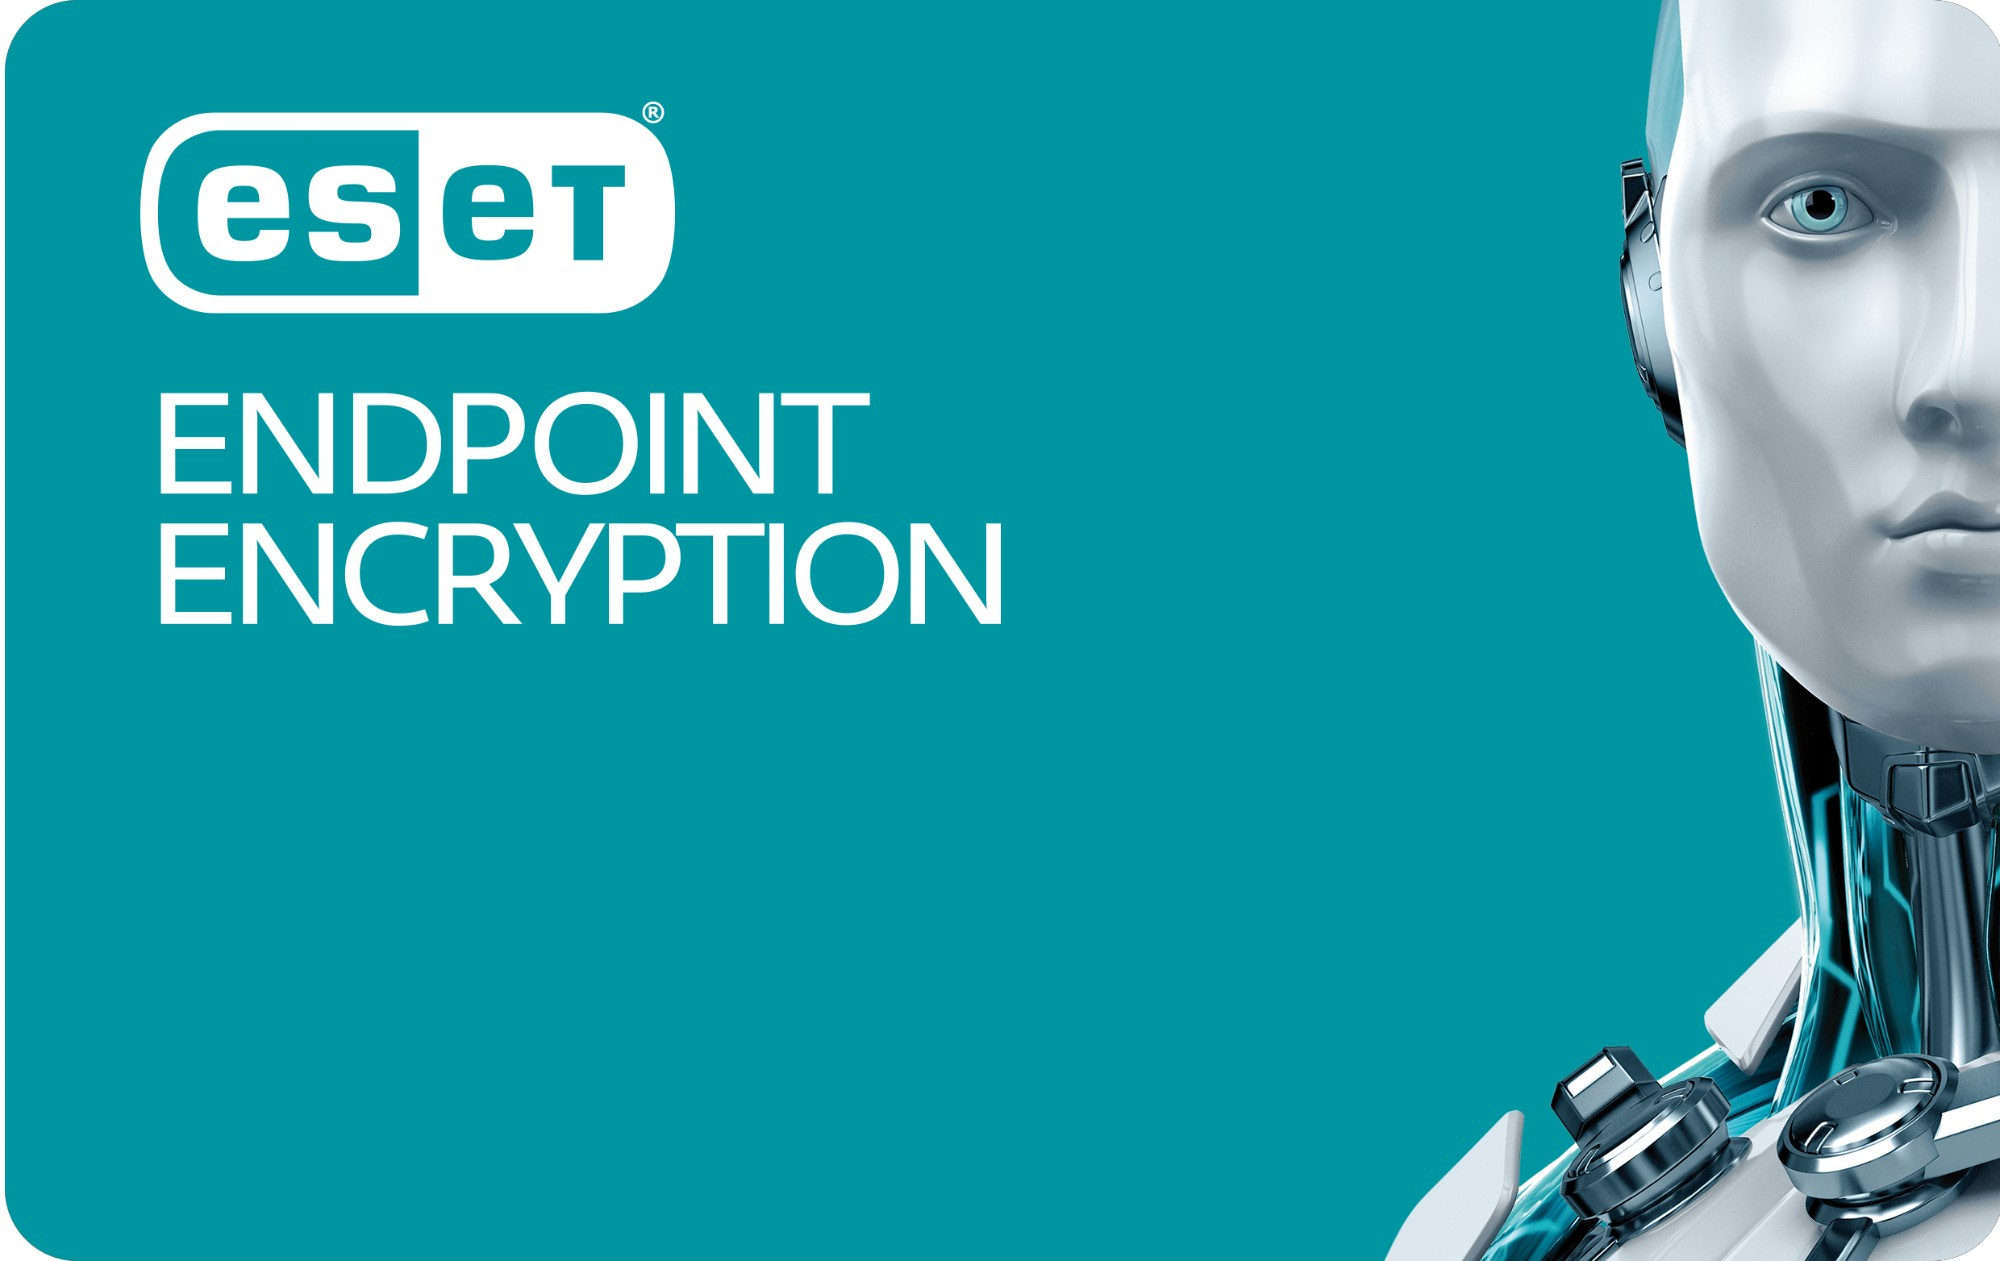 ESET Endpoint Encryption Pro 250 - 499 User Government (GOV) license 250 - 499 license(s) 3 year(s)